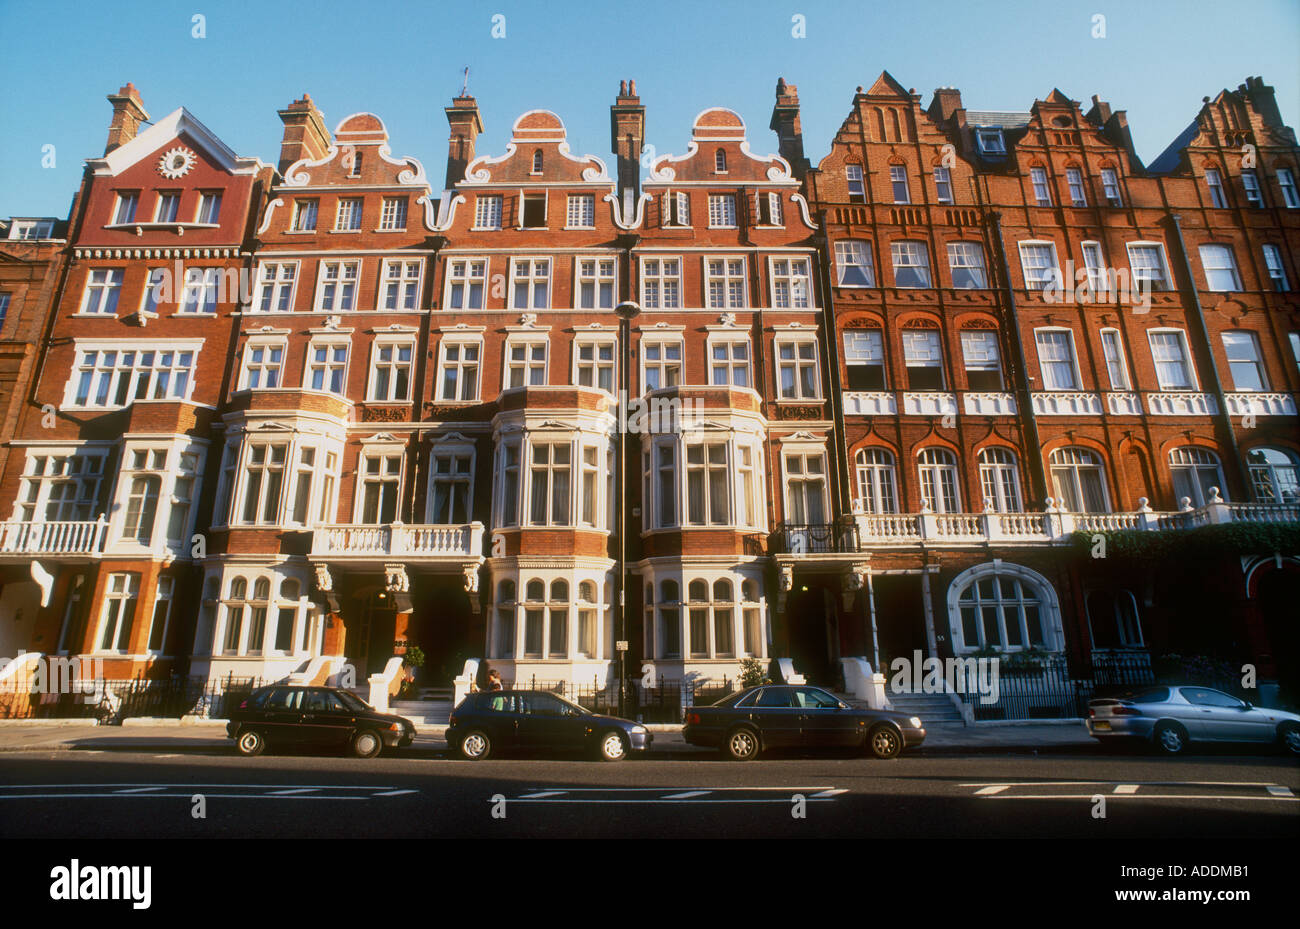 queen anne style houses london stock photos queen anne style wealthy 1860 s high victorian terraced houses in queen anne style london sw1 stock image